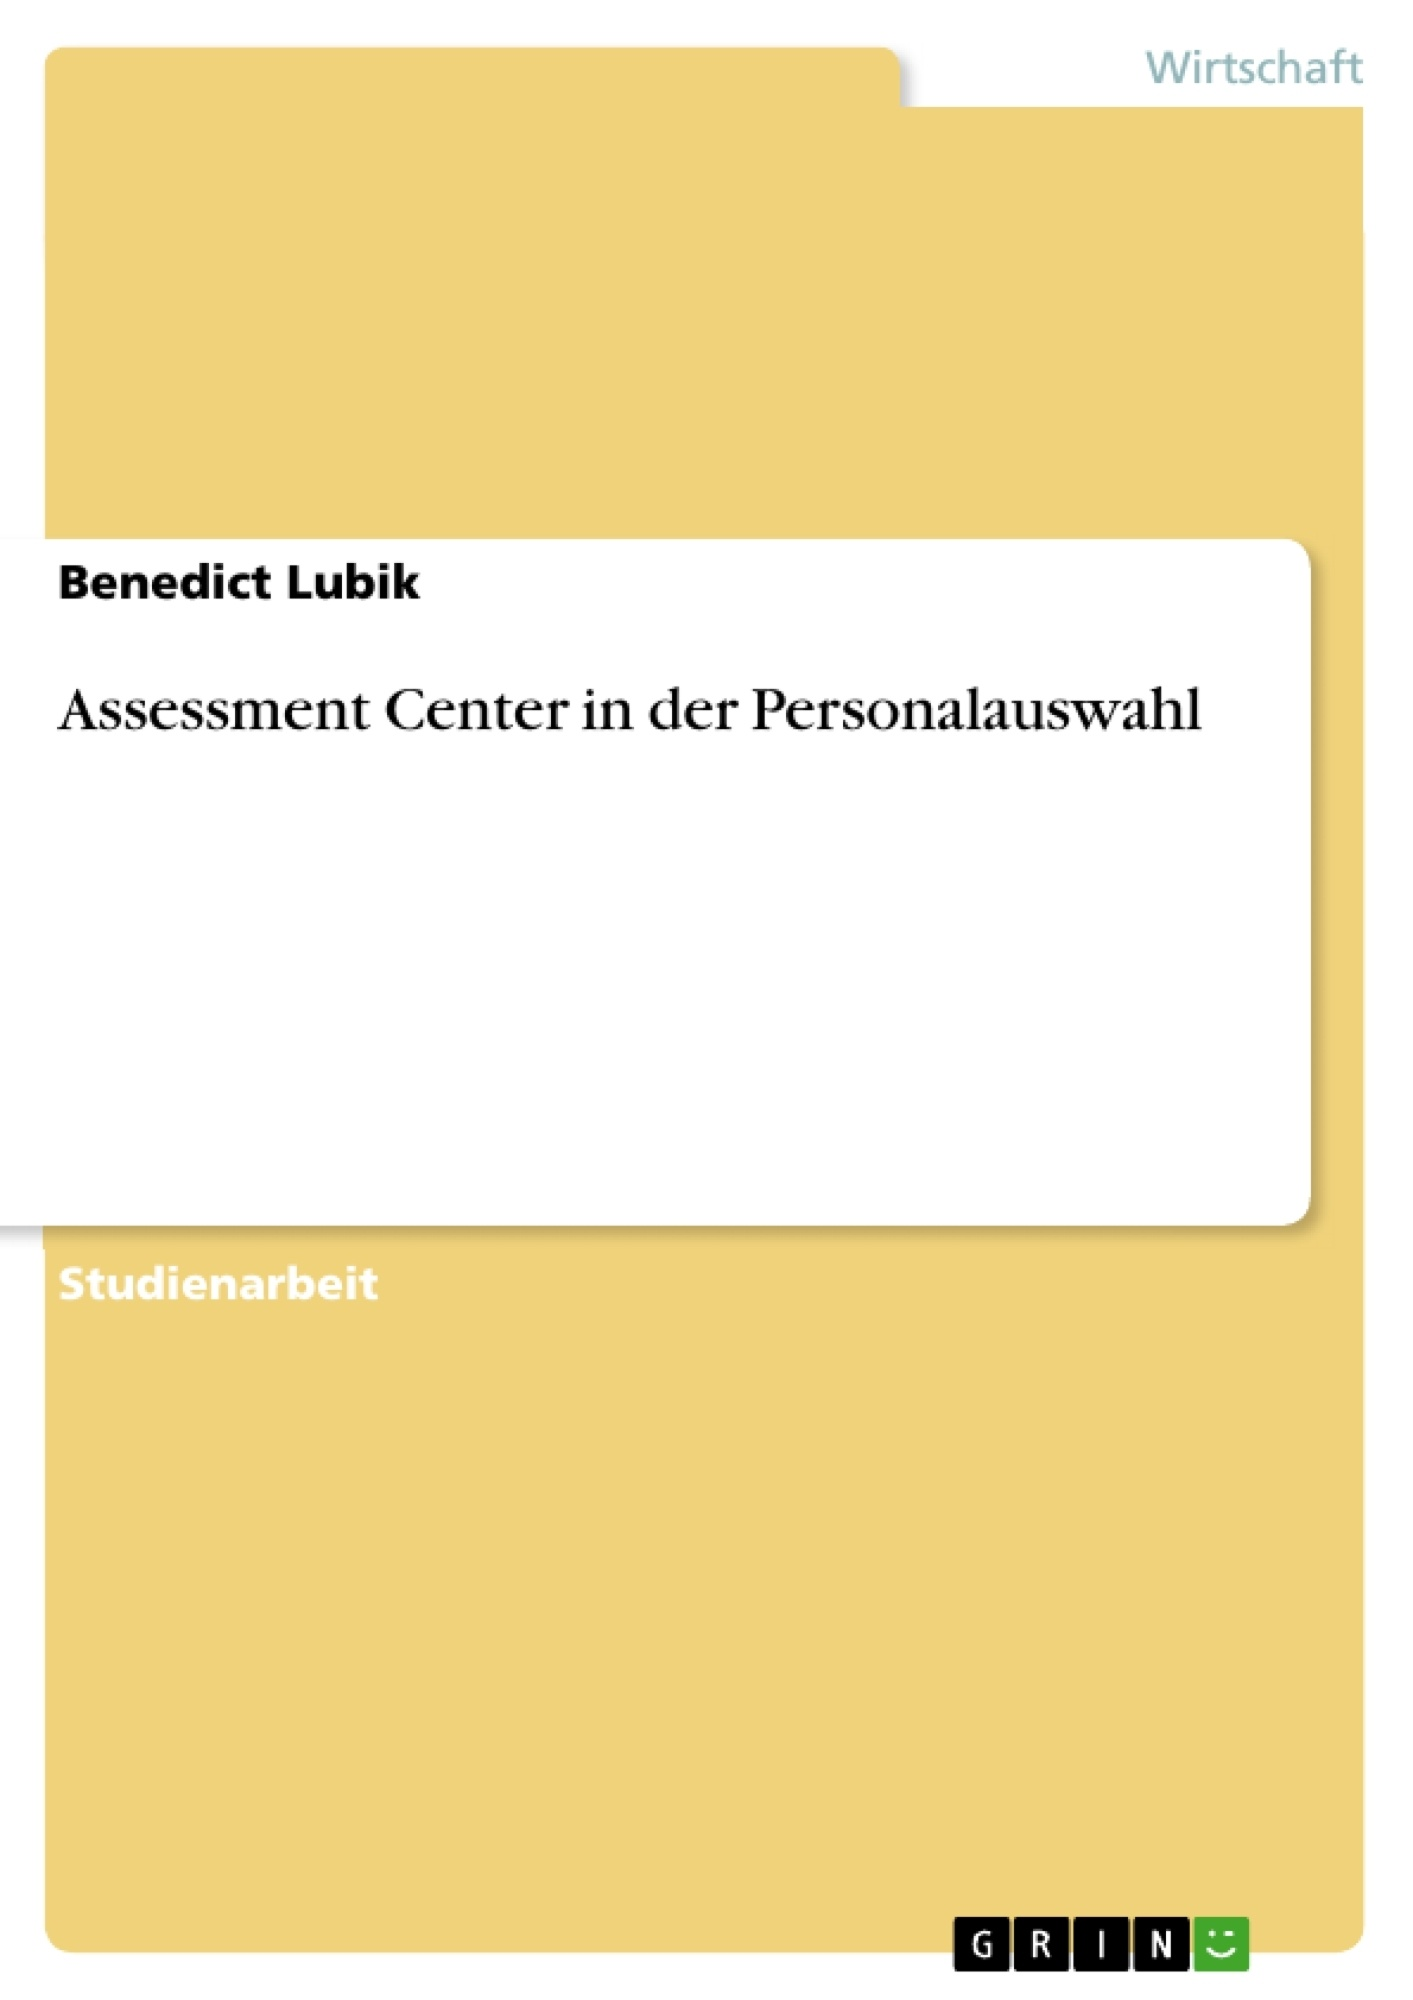 Titel: Assessment Center in der Personalauswahl